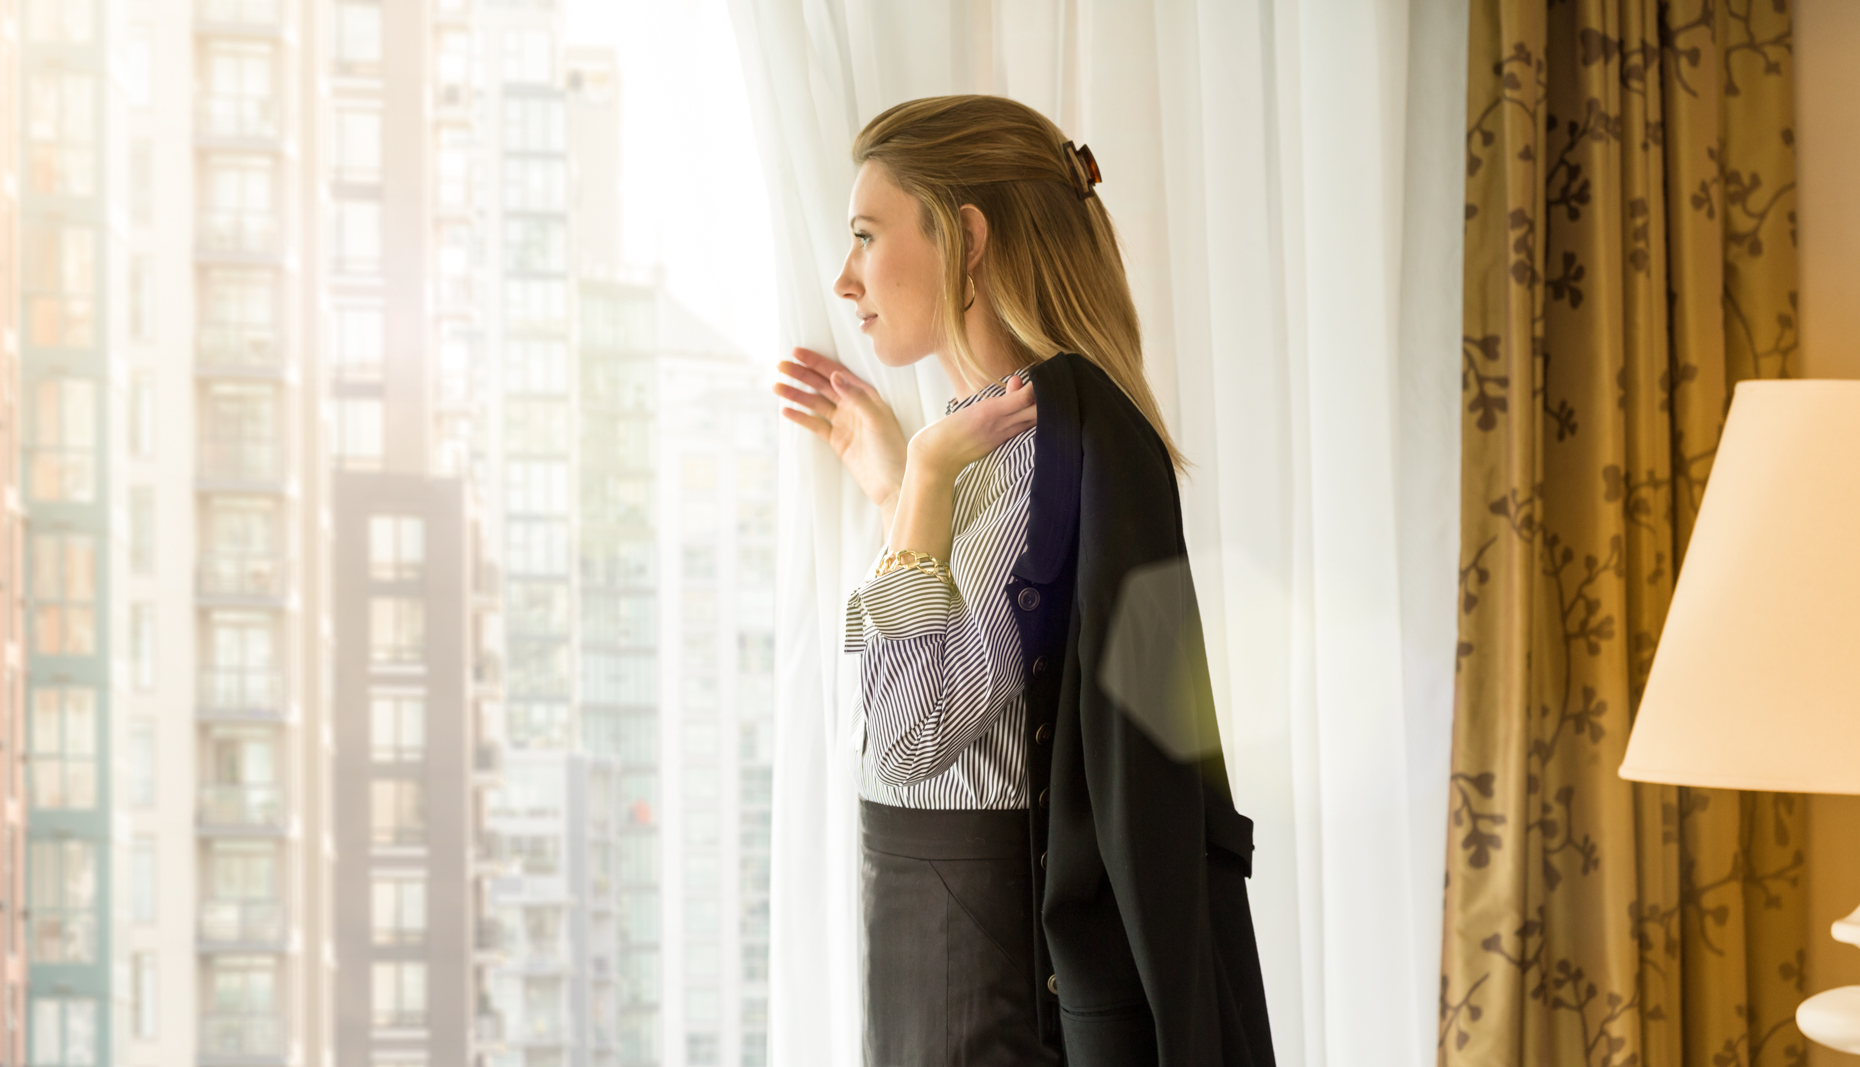 Woman businesswoman female business traveler looking out at city through hotel room window